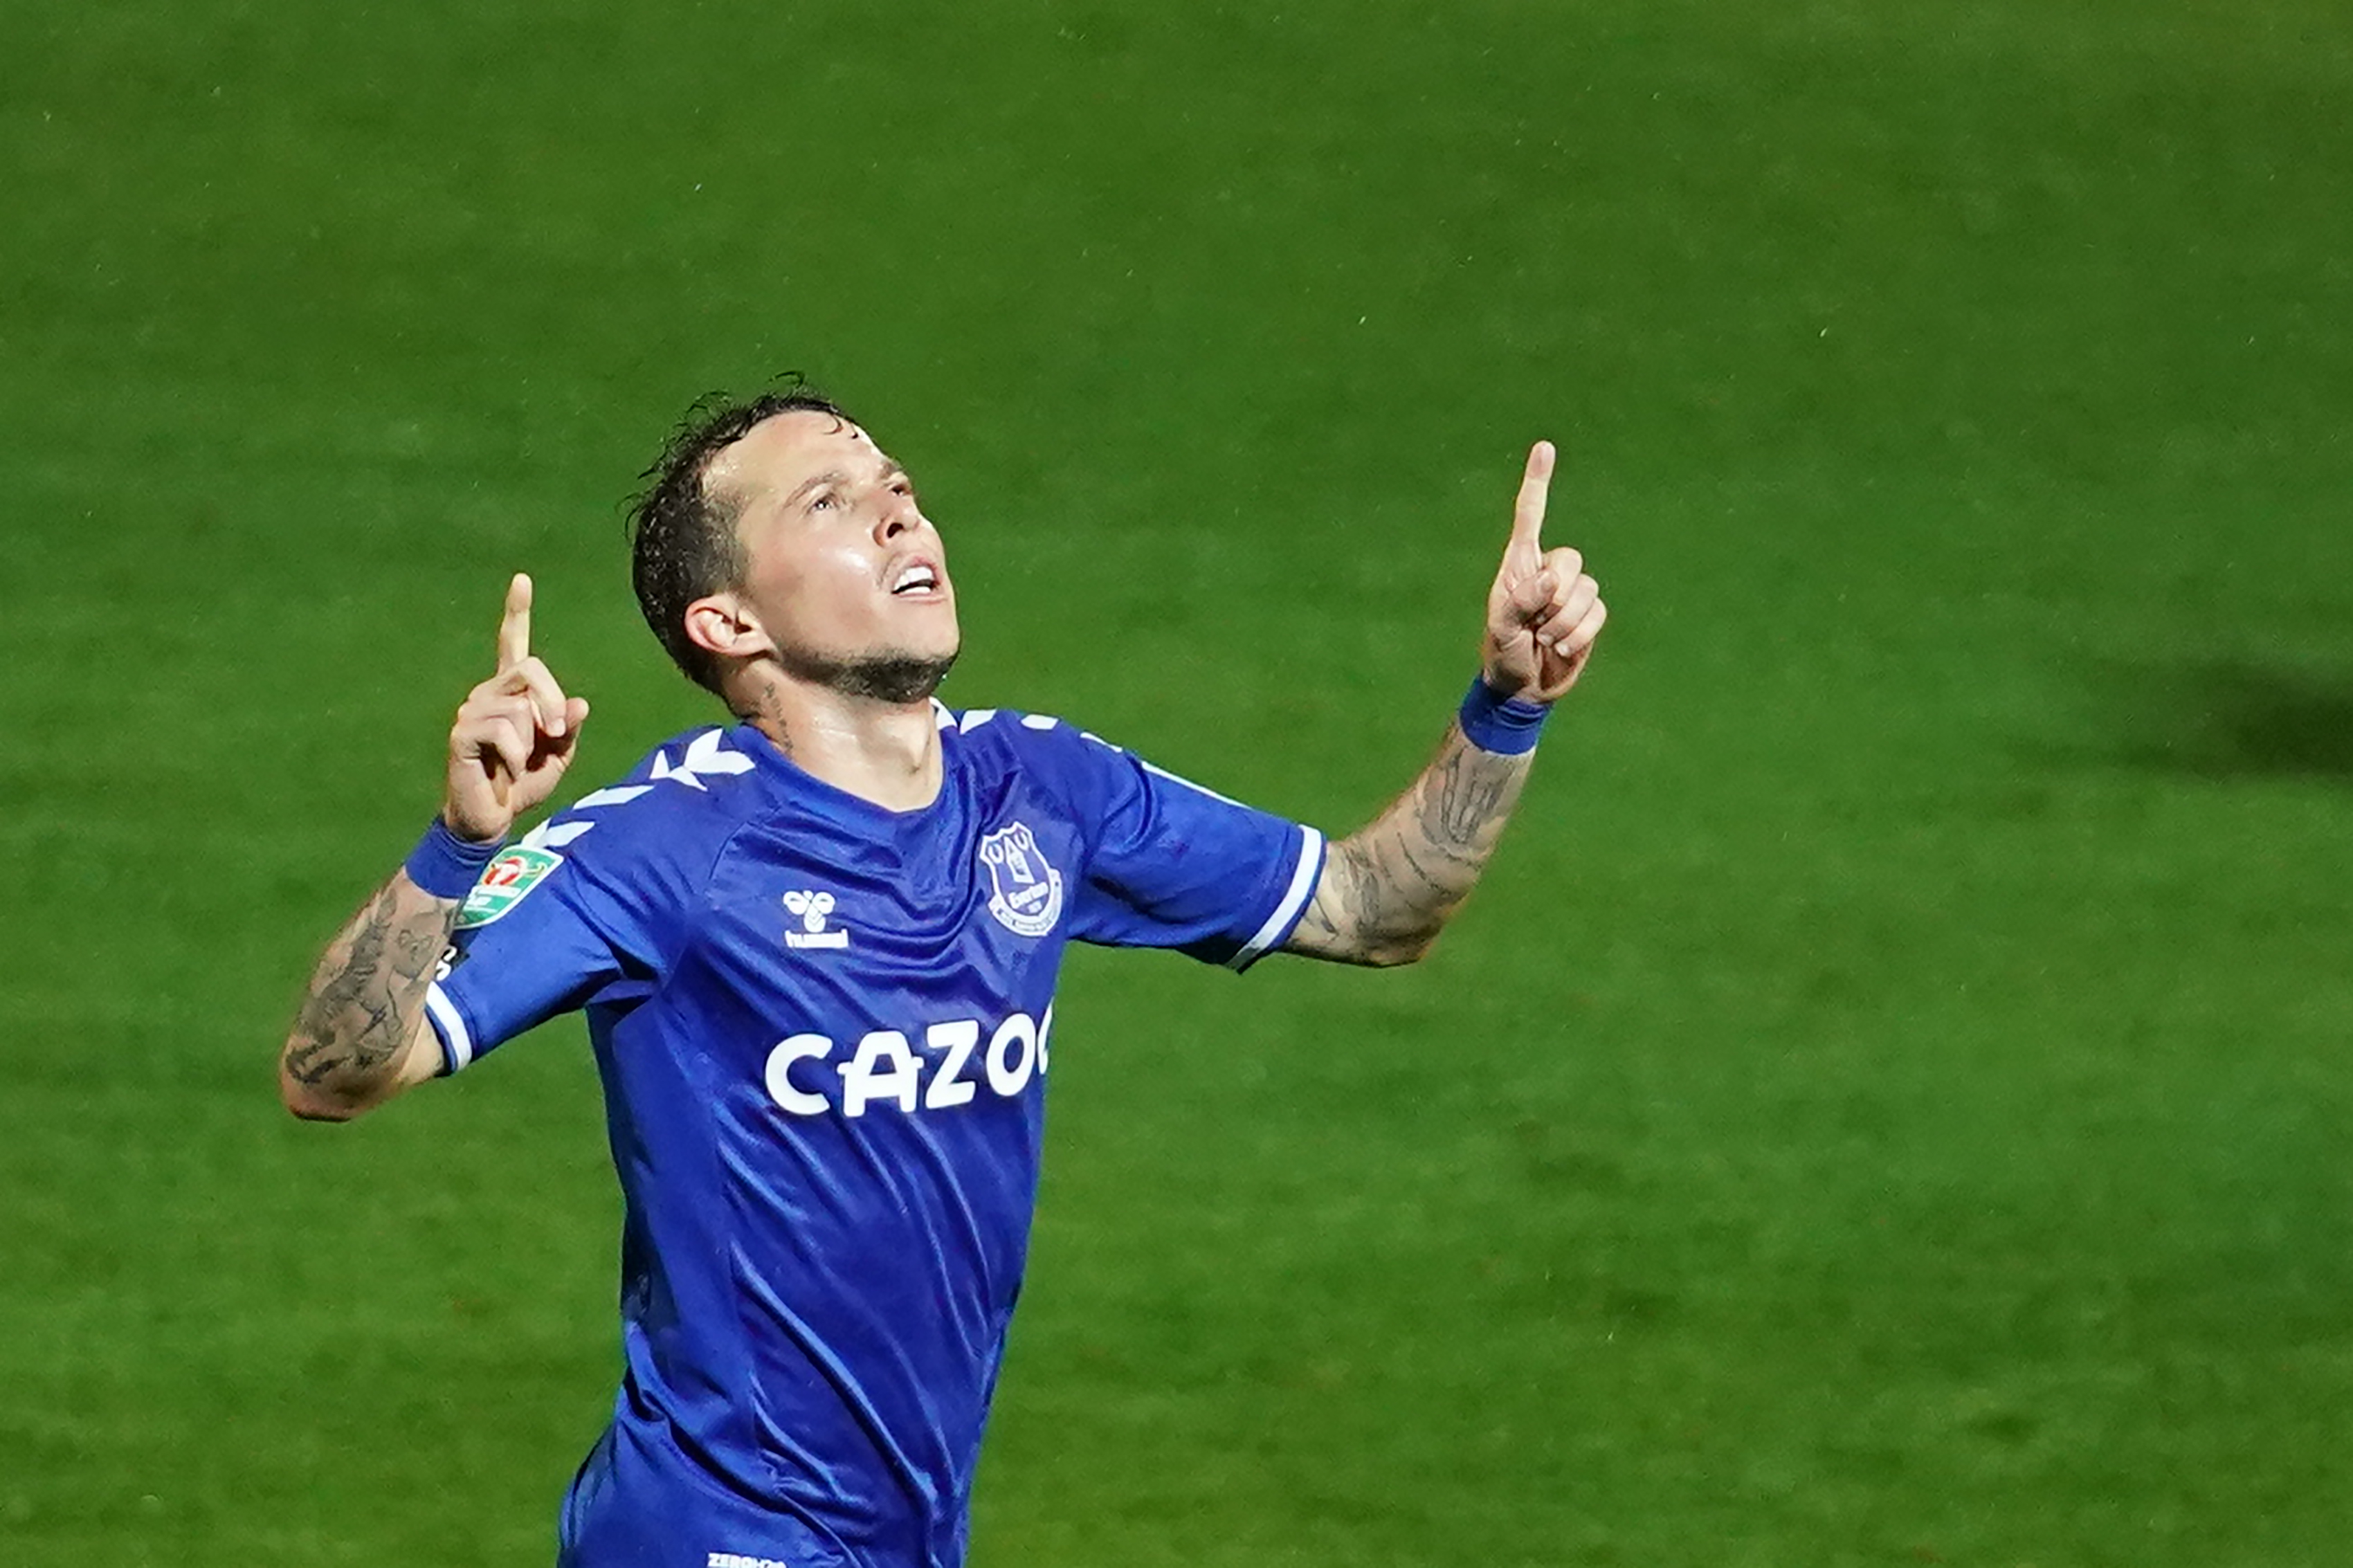 AS Roma boss determined to sign Everton's Bernard who is celebrating in the picture